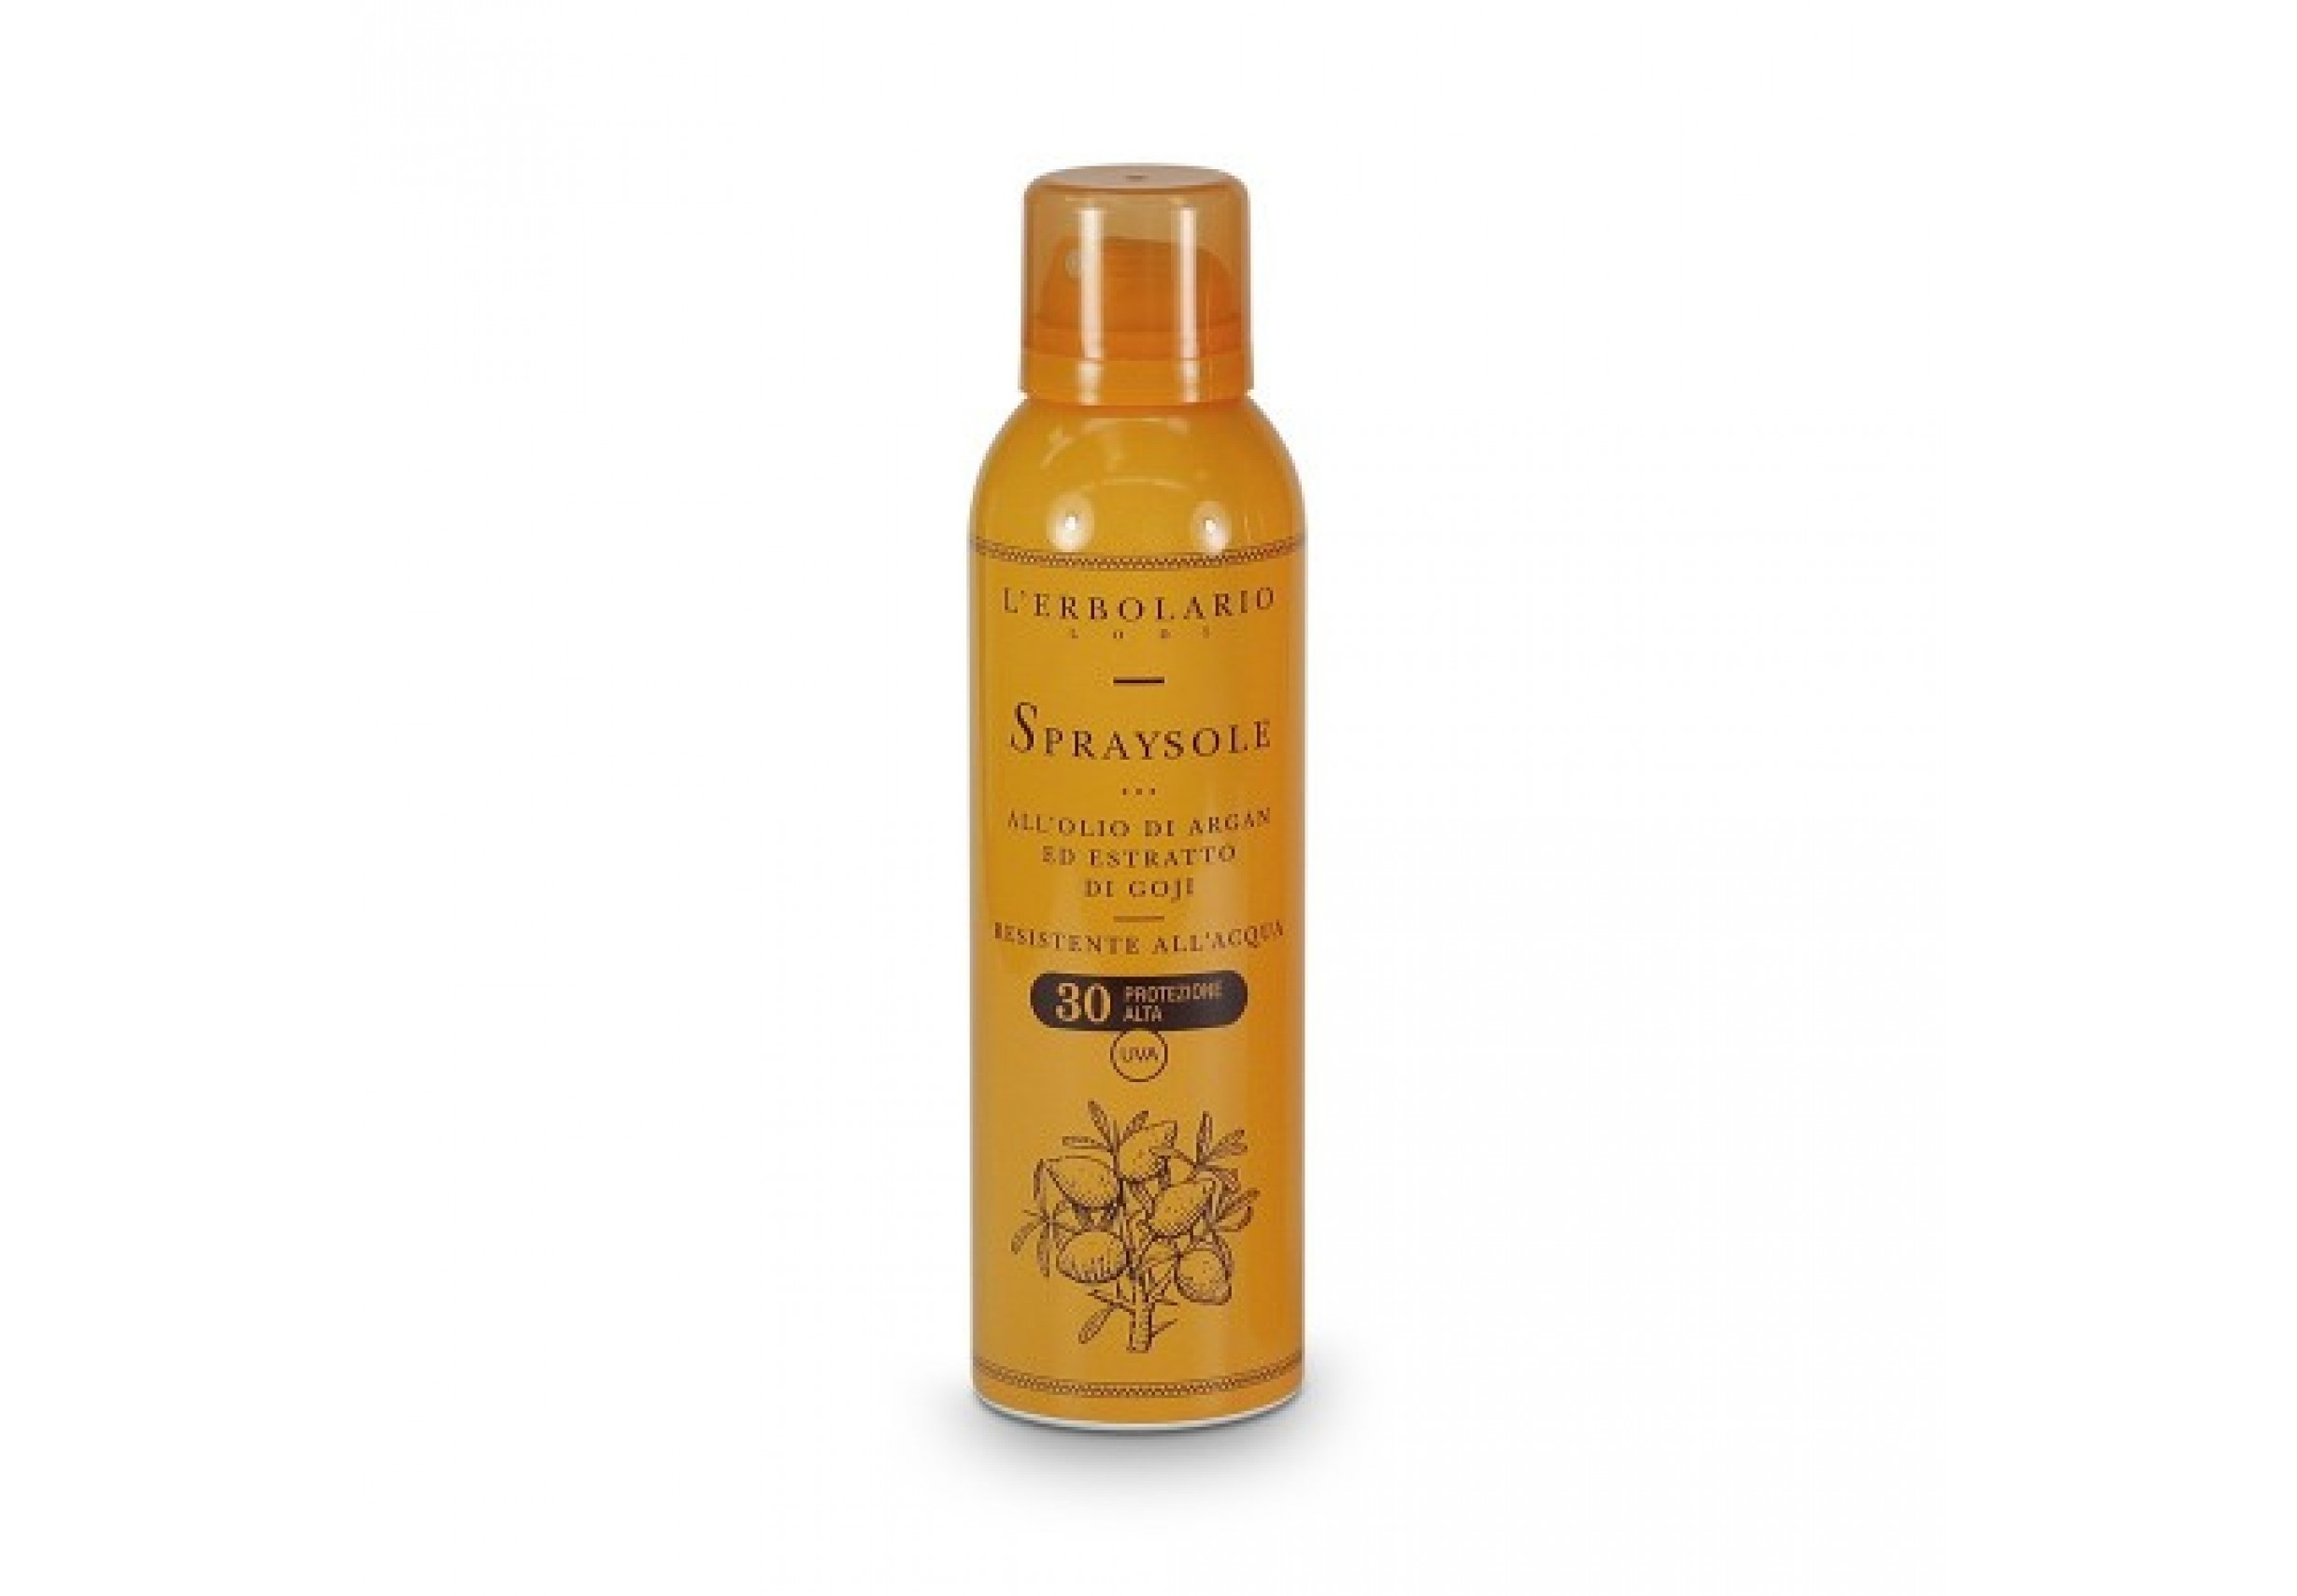 Sun protection spray with argan oil and goji berry extract